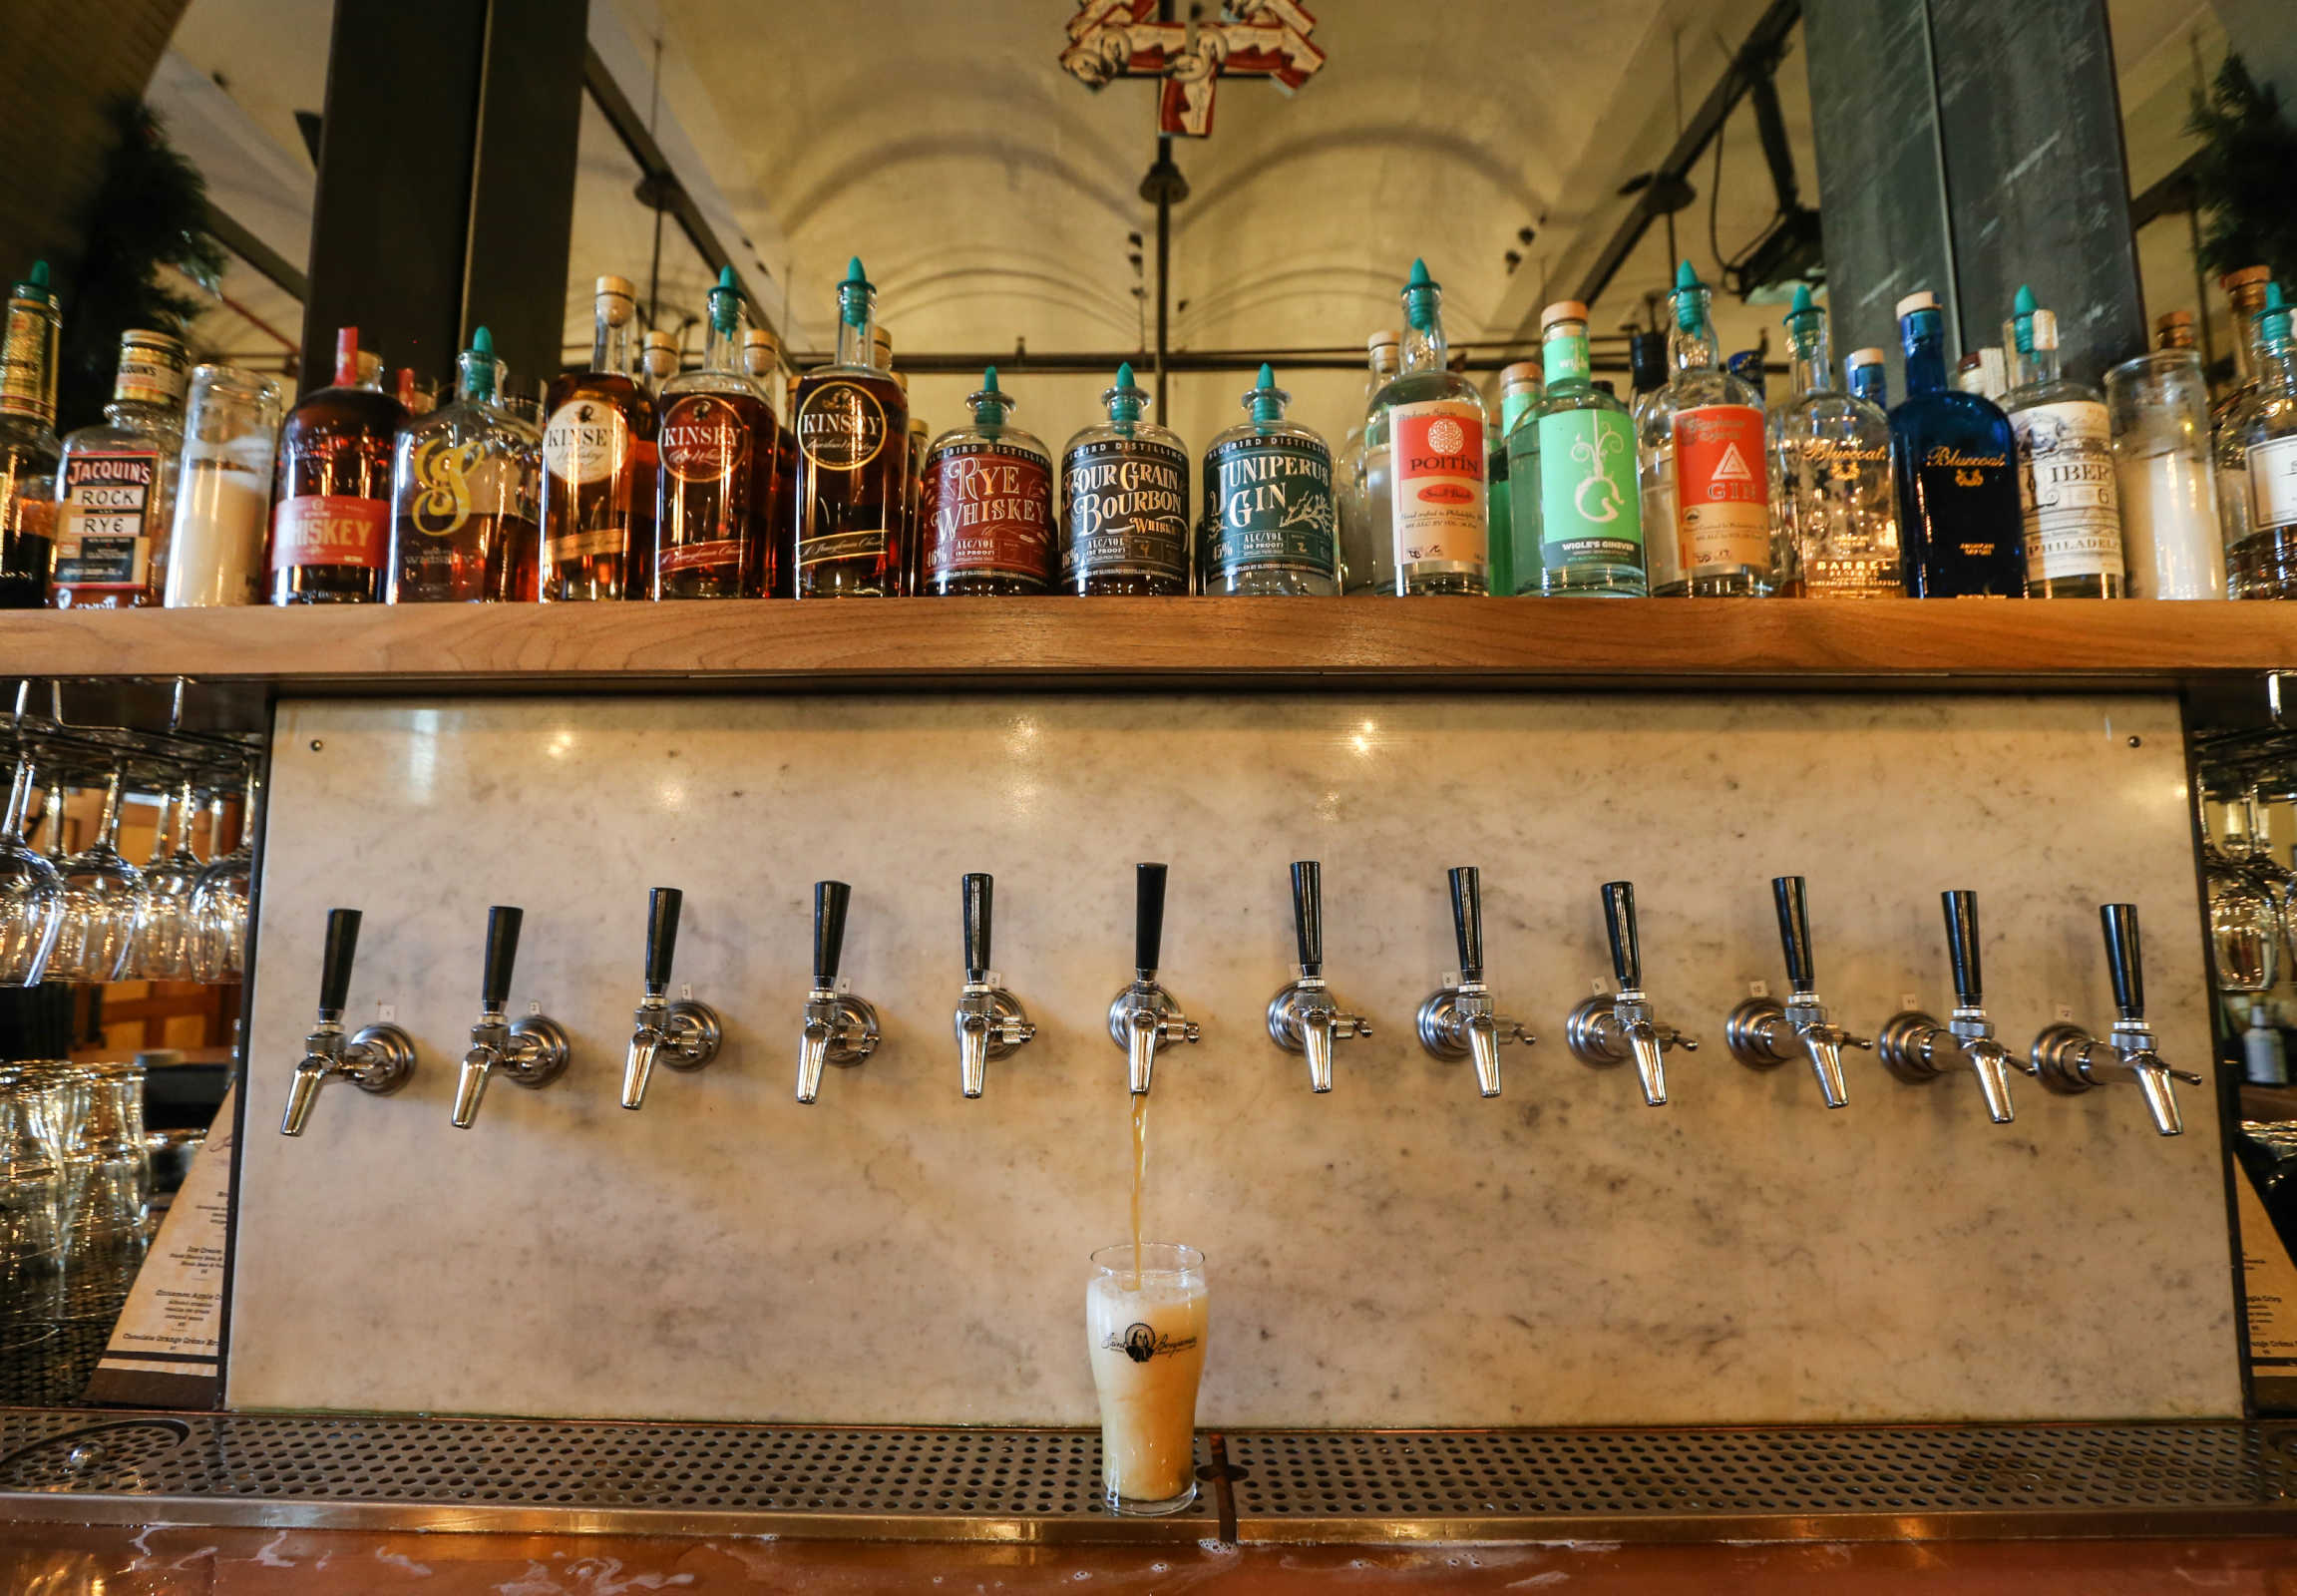 St. Benjamin Brewing Co. in Kensington stocks the gamut of Pennsylvania spirits, thanks to last summer´s liquor-law changes that allowed Pennsylvania limited wineries, brew pubs, and distillers to sell each other´s products for on-premise consumption.